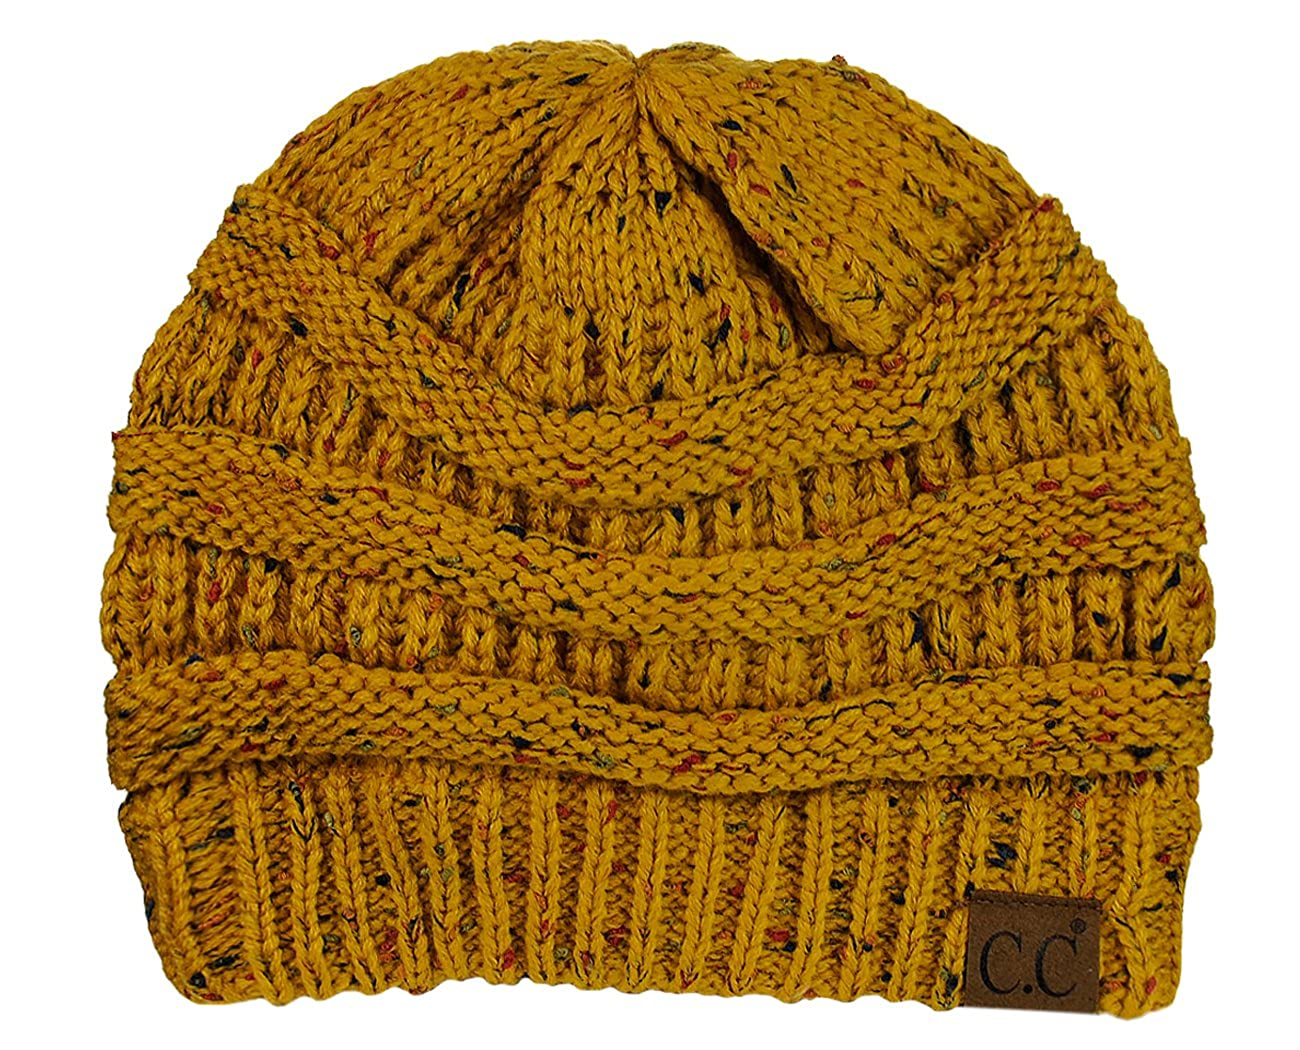 C.C Unisex Colorful Confetti Soft Stretch Cable Knit Beanie Skull Cap -  Mustard at Amazon Women s Clothing store  3d7eb37ac0e